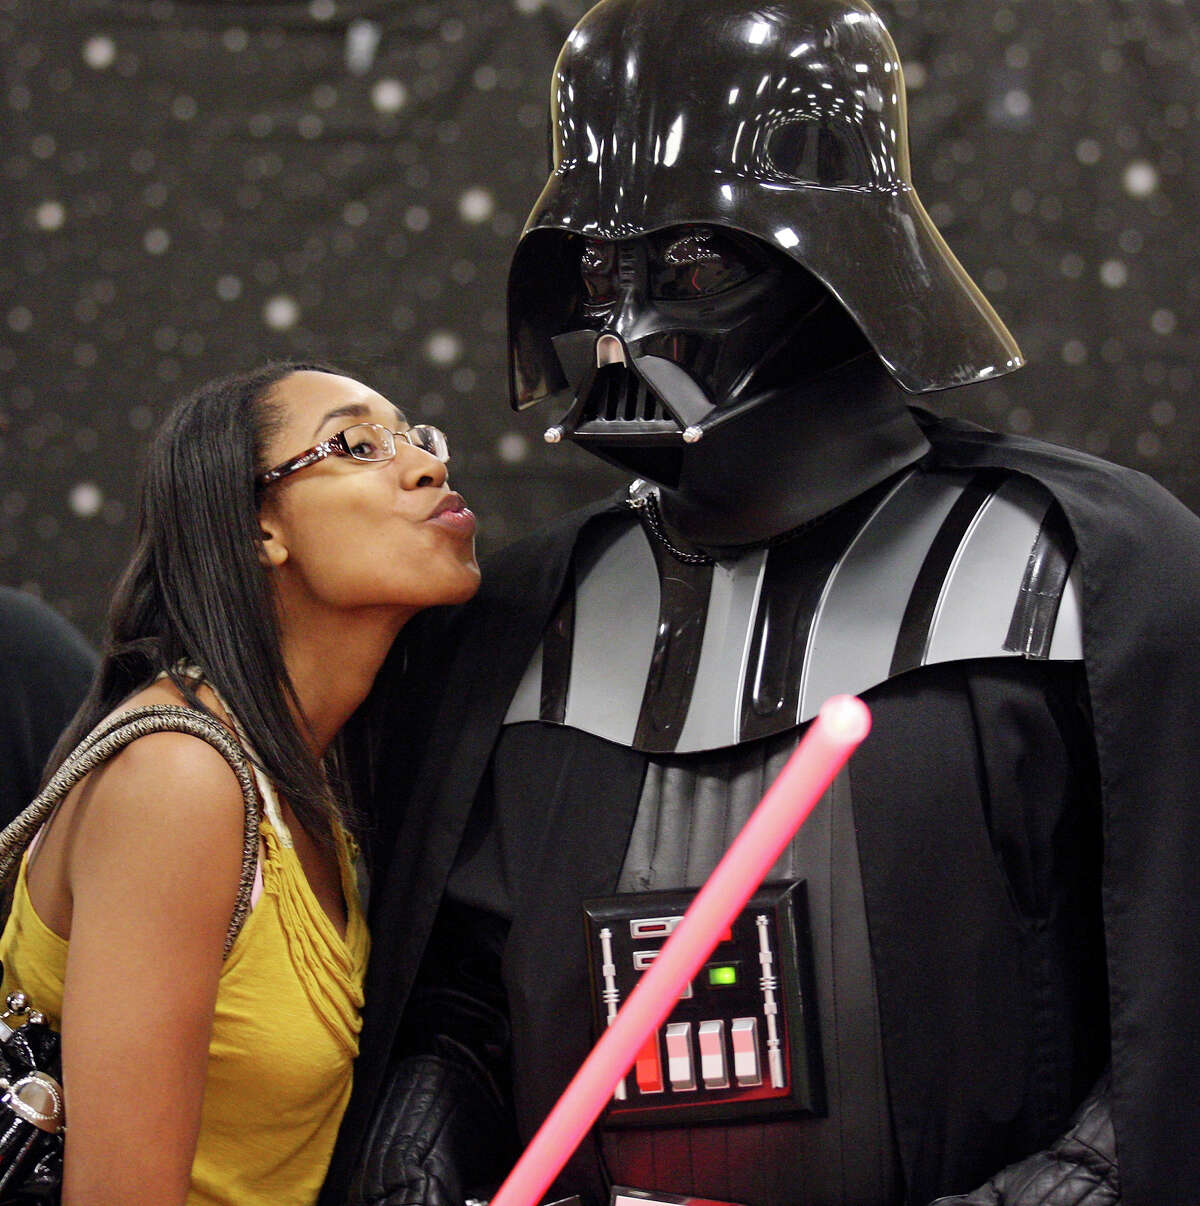 FOR METRO - Deshanta Smith, 23, poses for a photo with Victor Settles, 39, as Darth Vader during the Texas Comicon 2011 Sunday June 26, 2011 at the San Antonio Event Center. (PHOTO BY EDWARD A. ORNELAS/eaornelas@express-news.net)